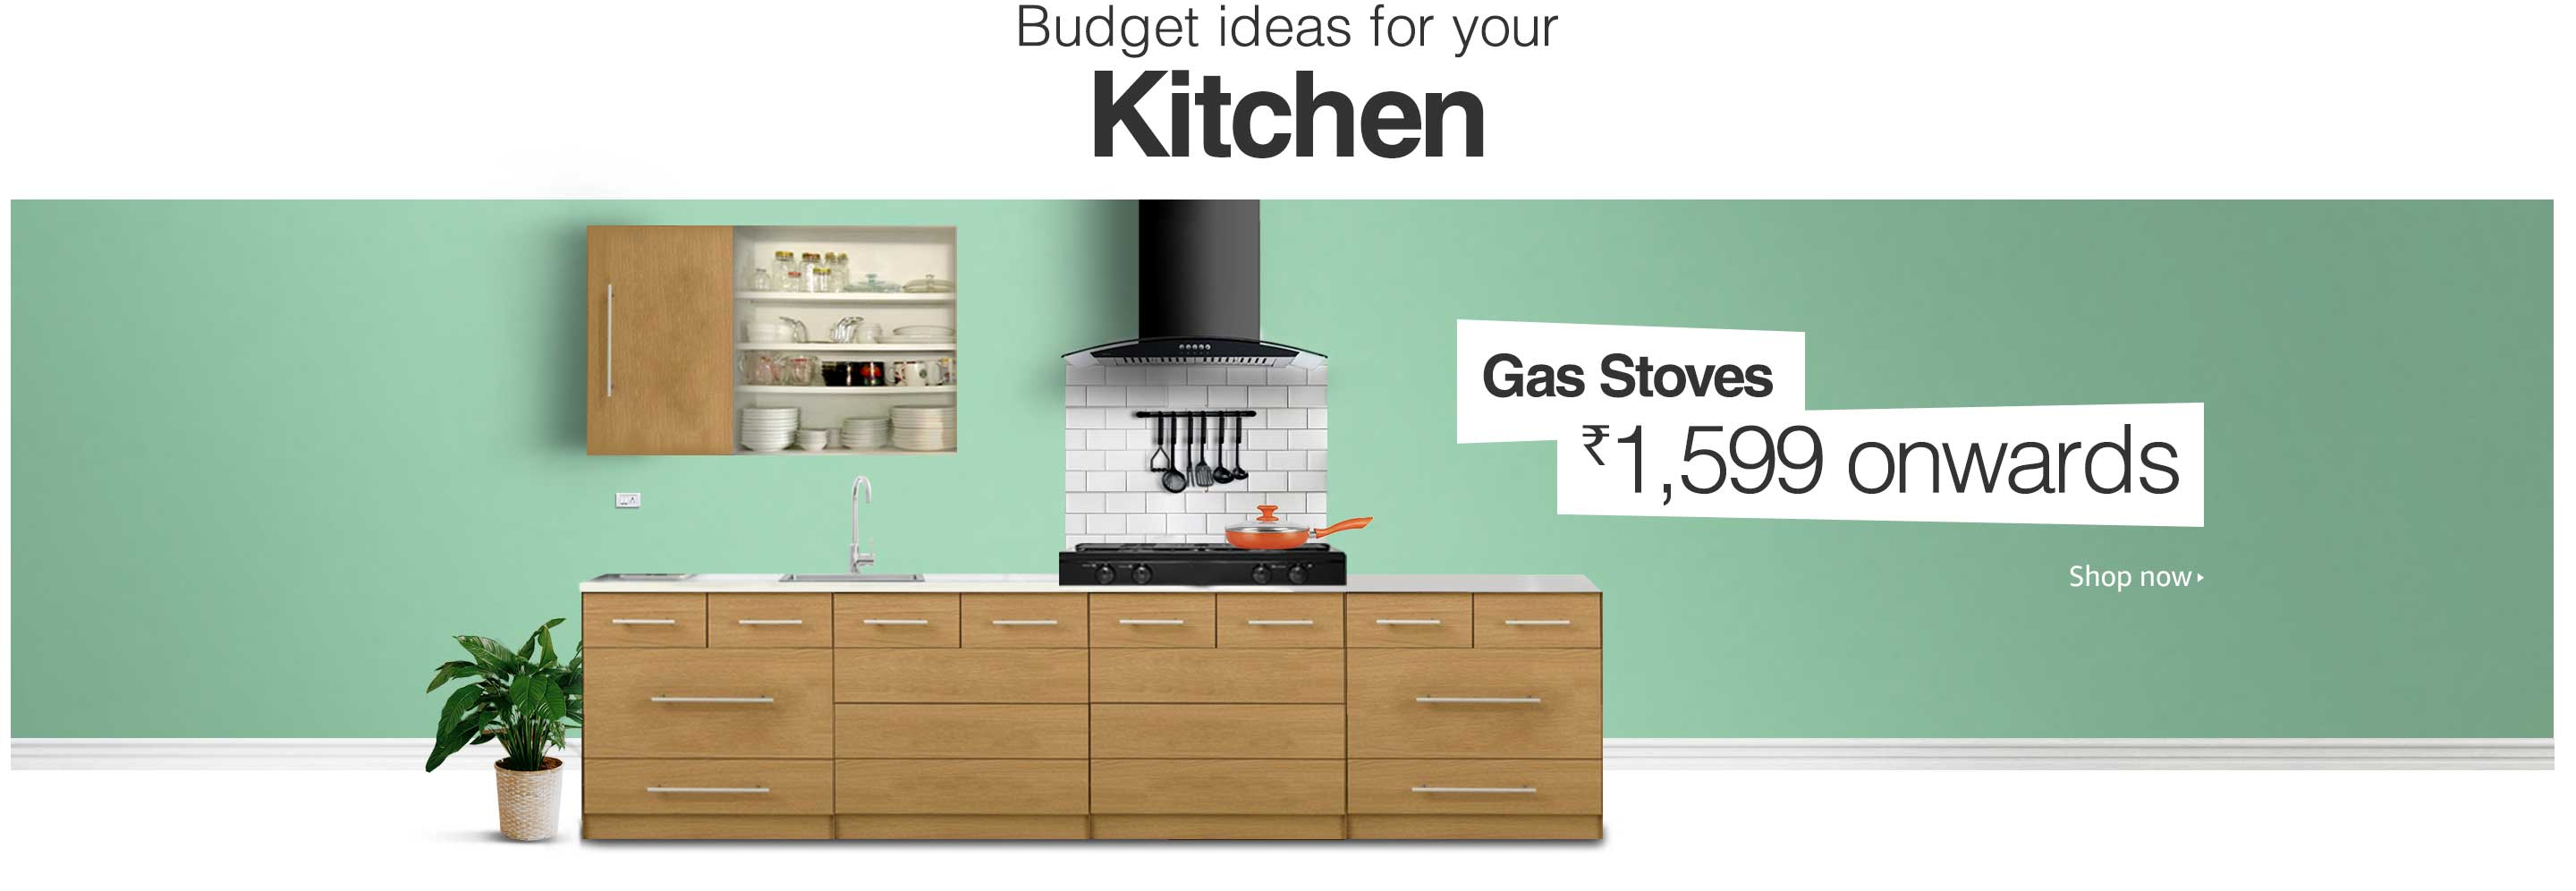 Amazon Kitchen Home Gas Stoves Tools